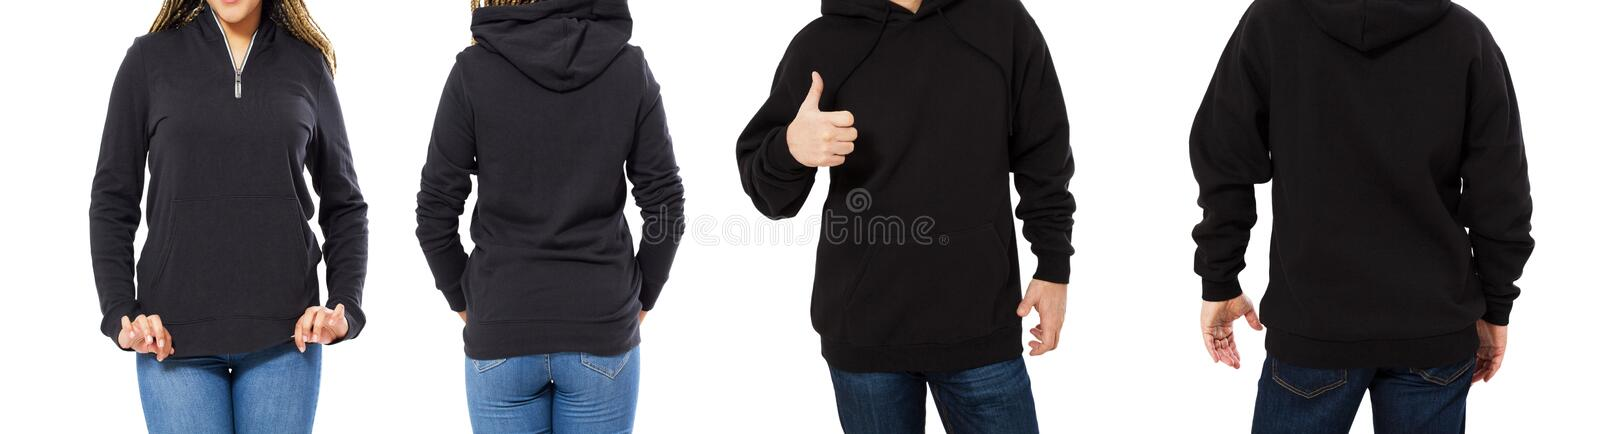 Female and male hoodie mock up isolated - hood set front and back view, girl and man in empty black pullover royalty free stock photo